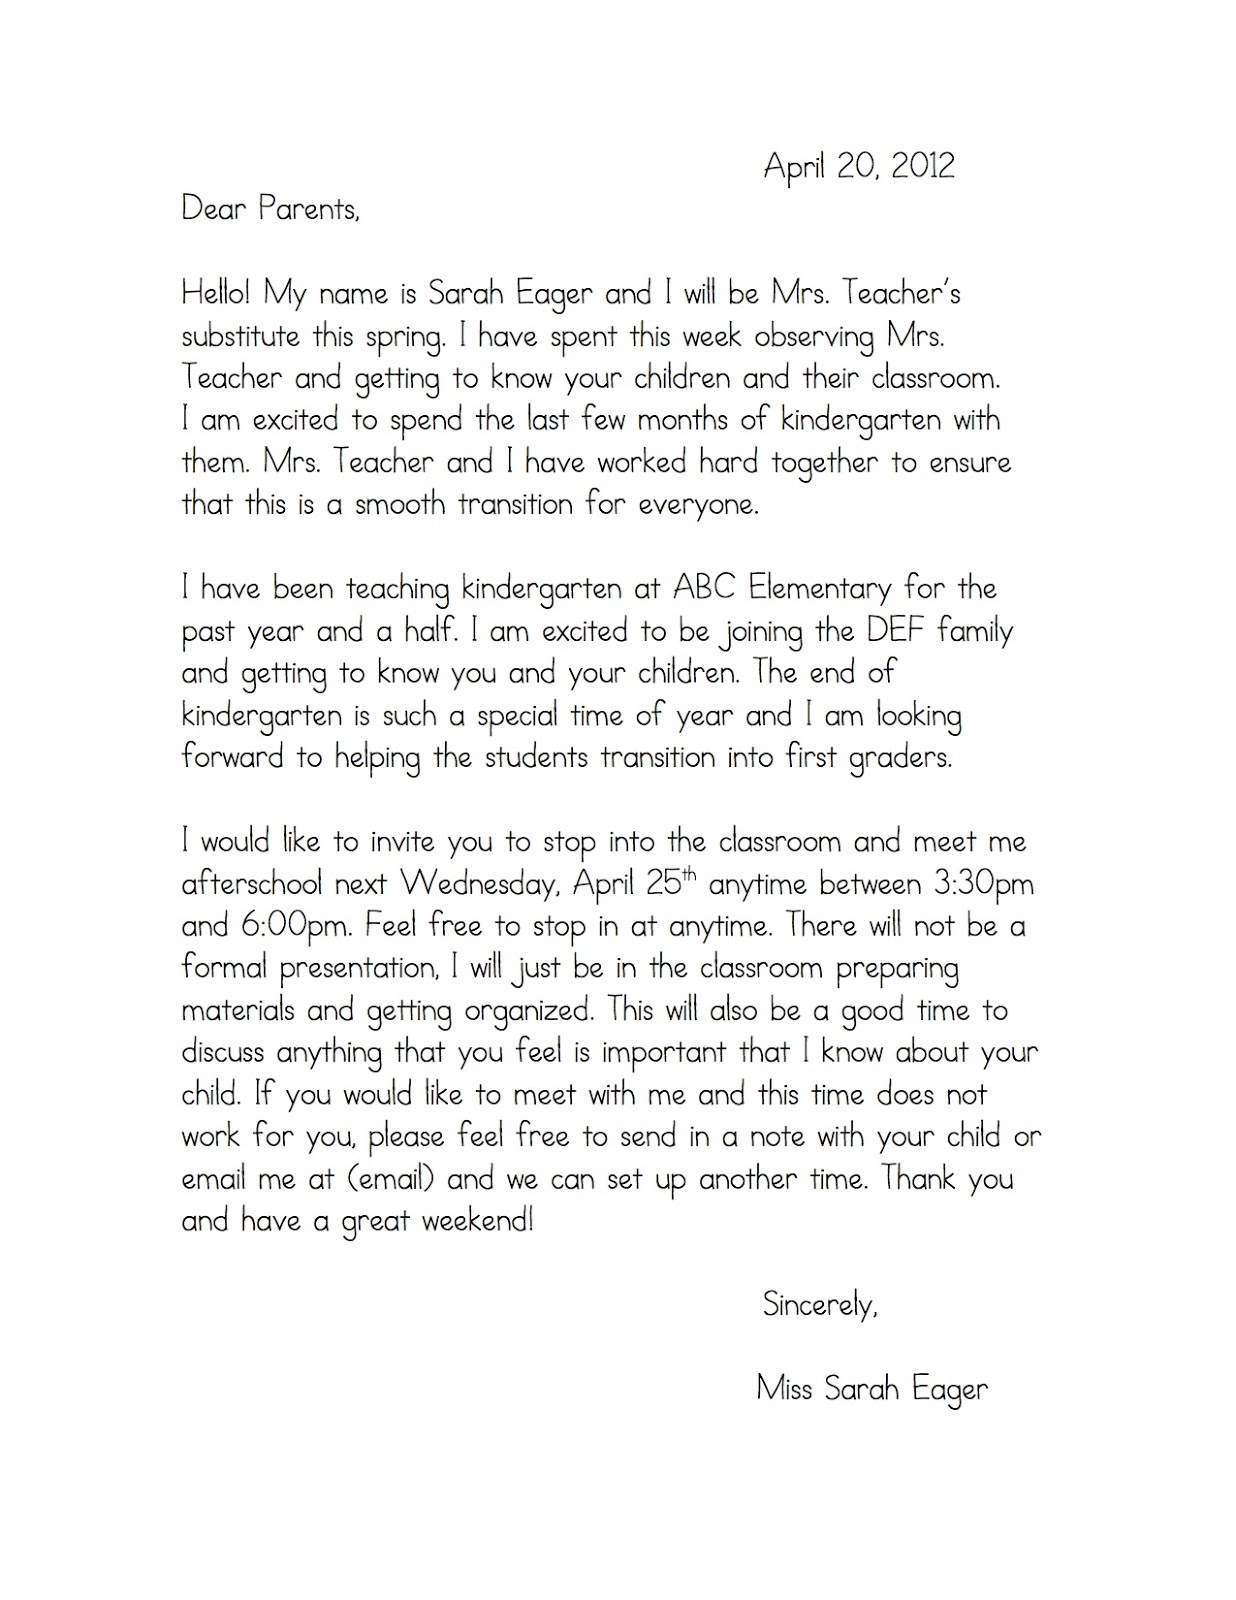 Sample Reference Letter For Preschool Teacher From Parent